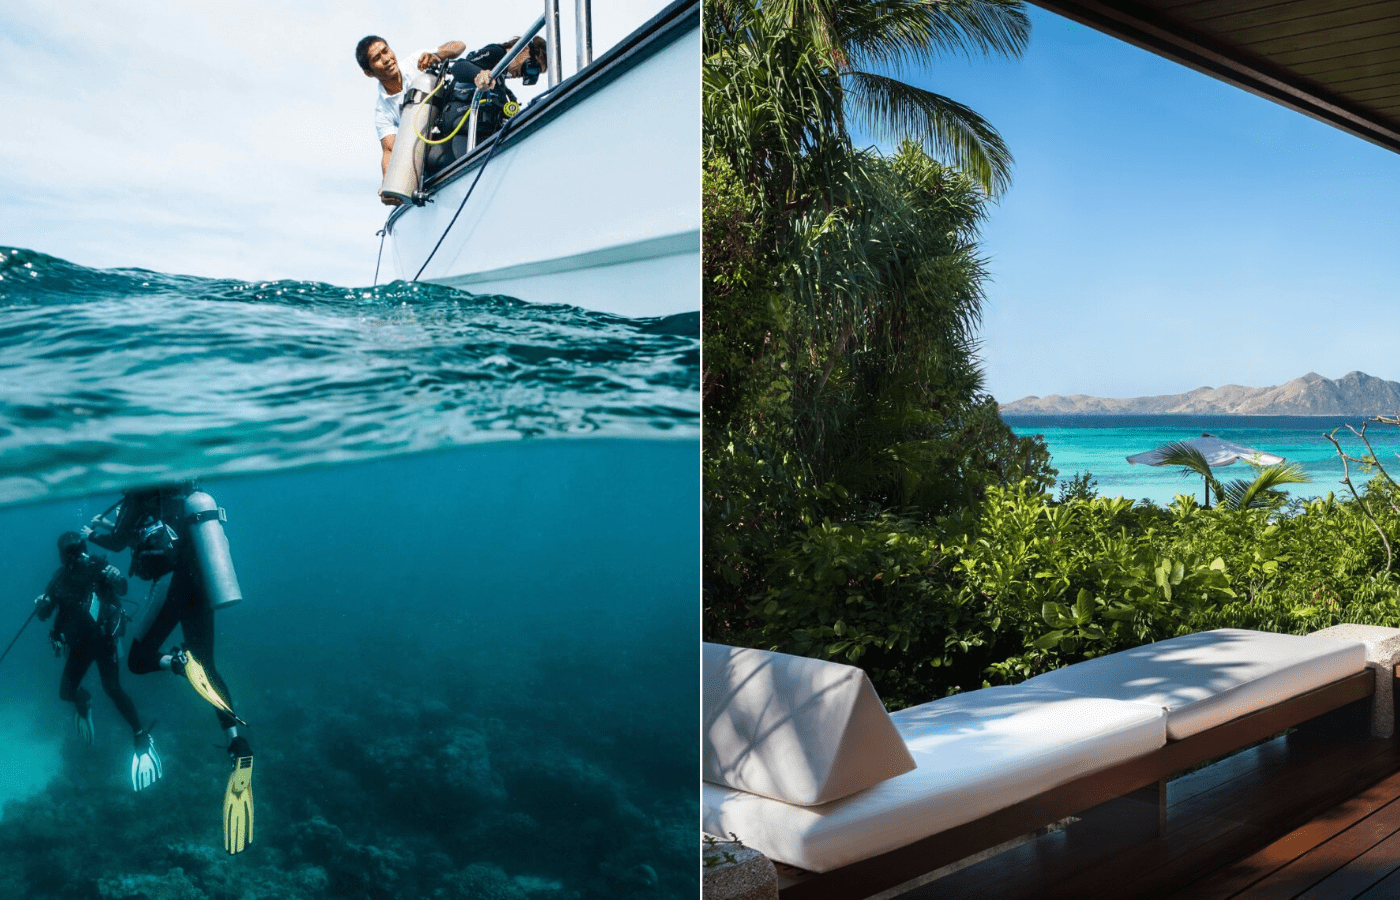 amanpulo island resort | private island resorts in Southeast Asia